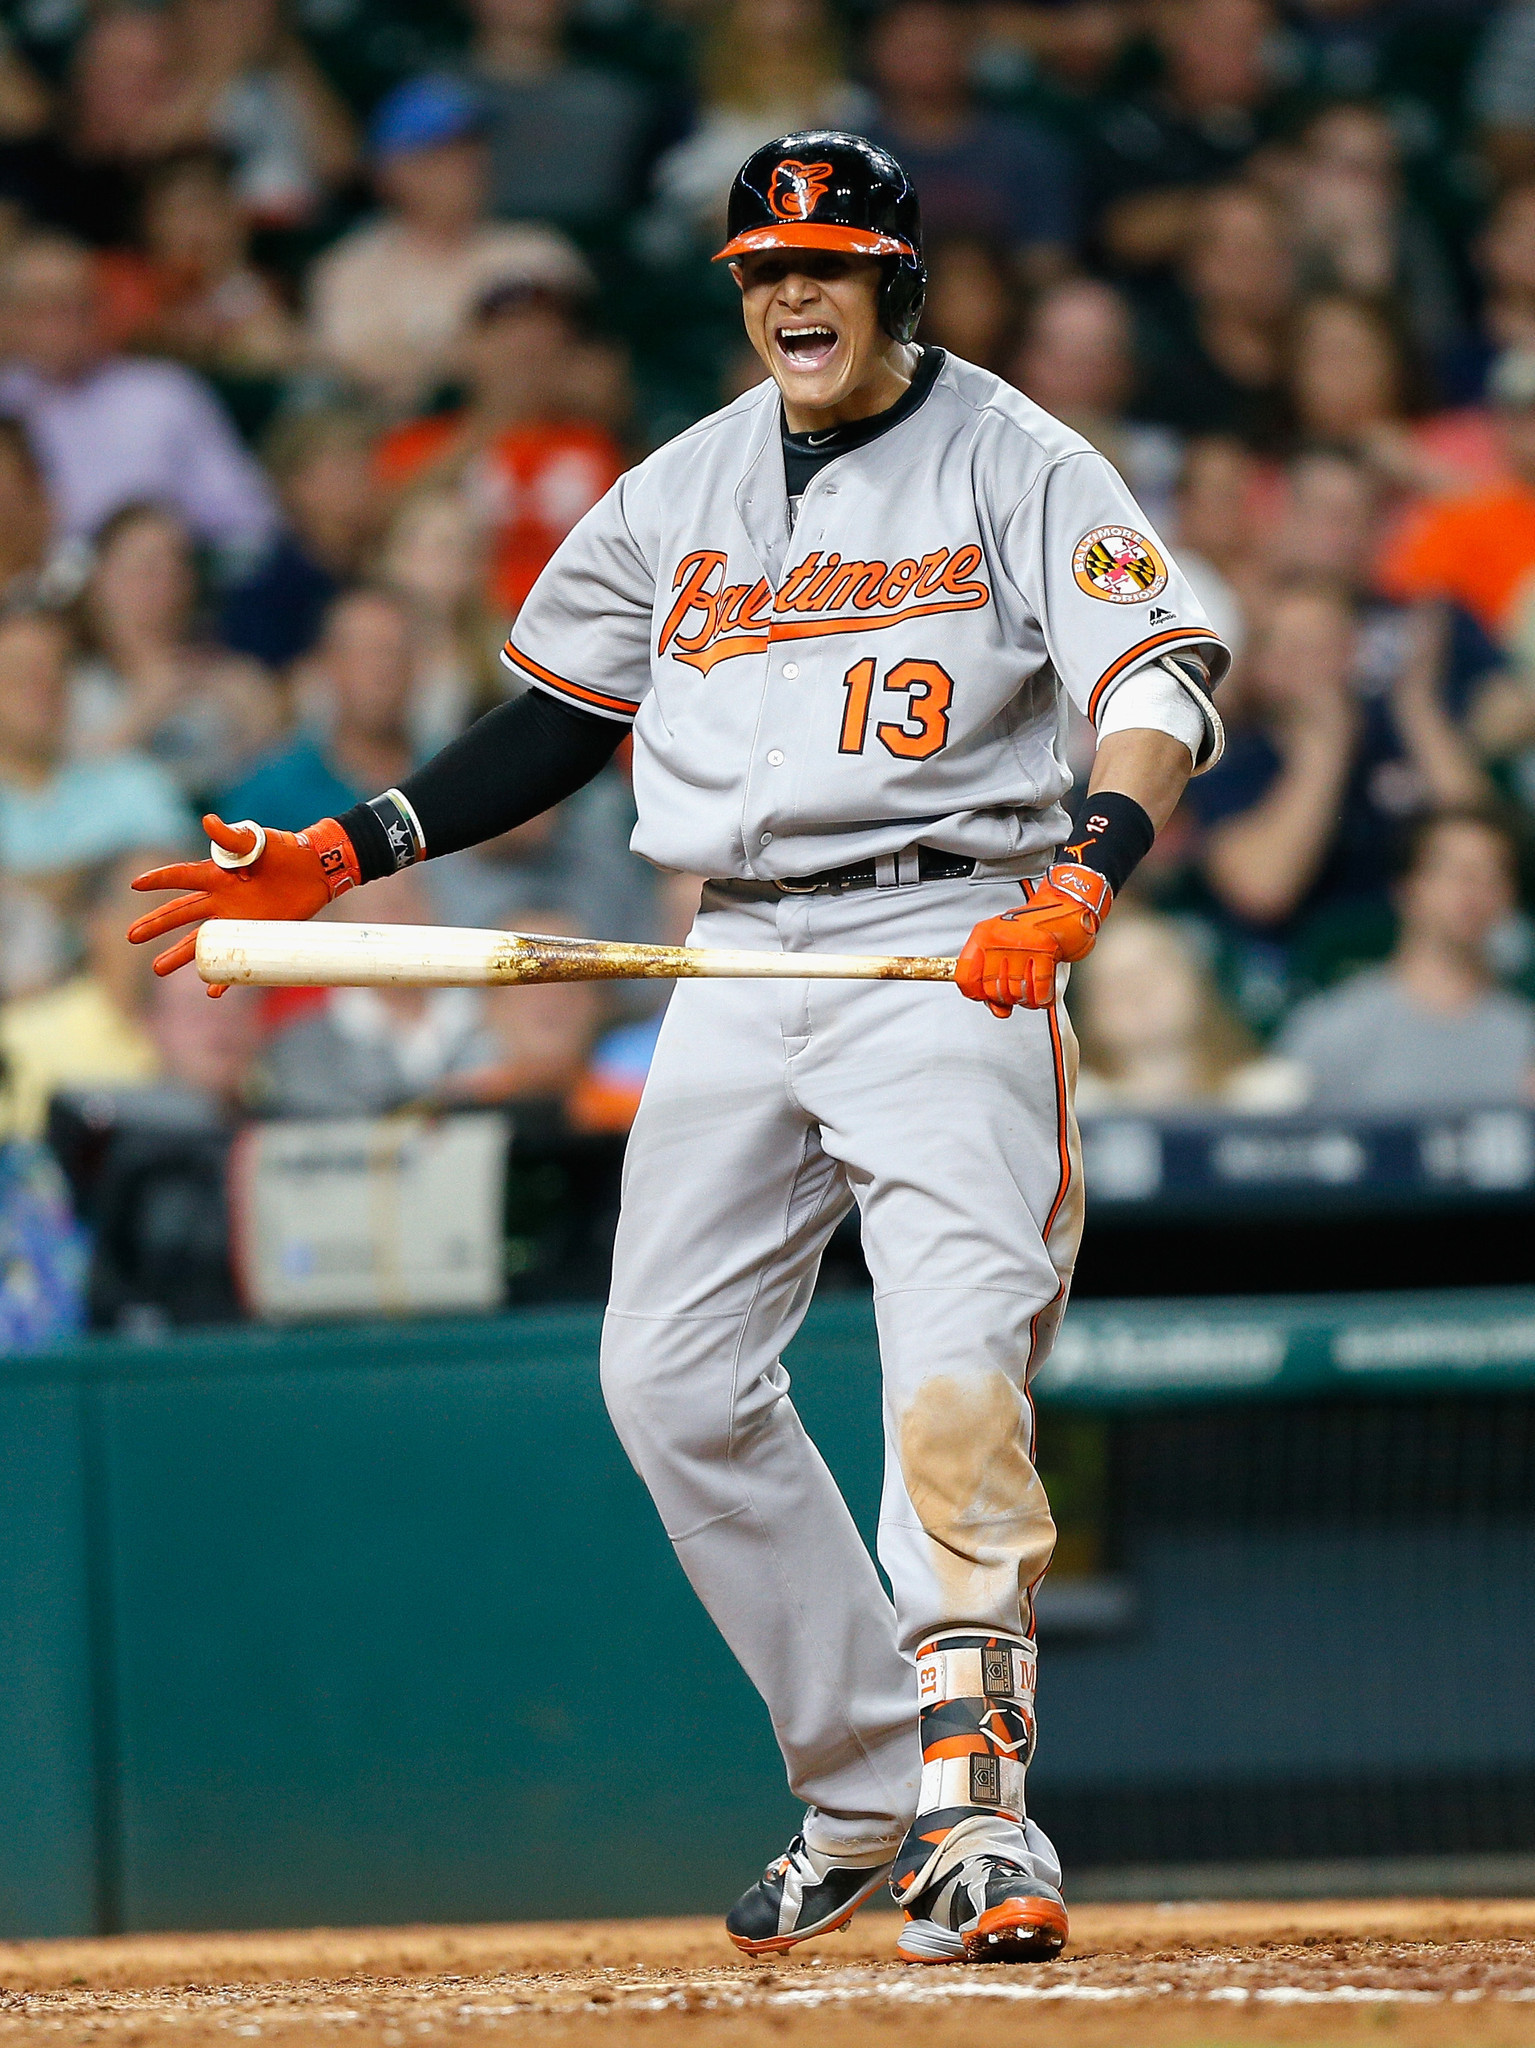 Bal-orioles-shrug-off-19-strikeout-night-at-the-plate-it-s-part-of-our-dna-as-a-team-20160524